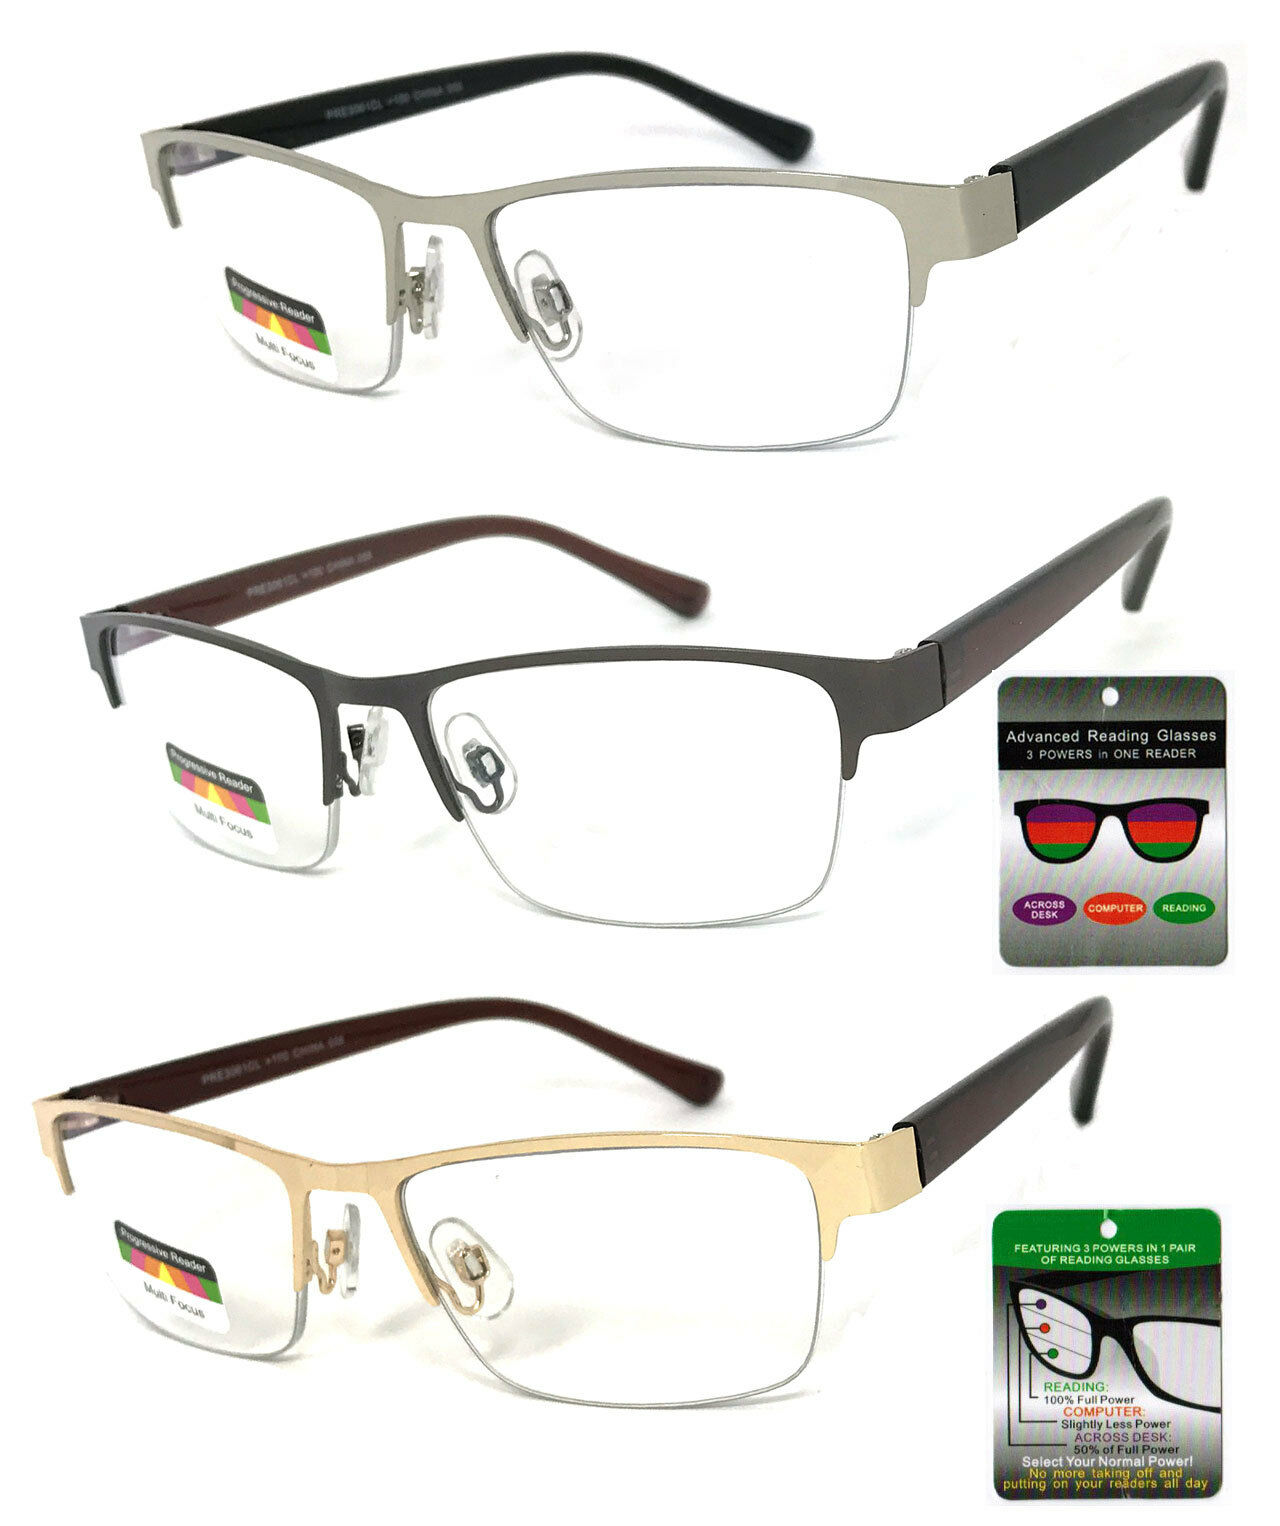 3f1194ffeac Metal Frame Progressive Reading Glasses 3 Power Strengths in 1 ...